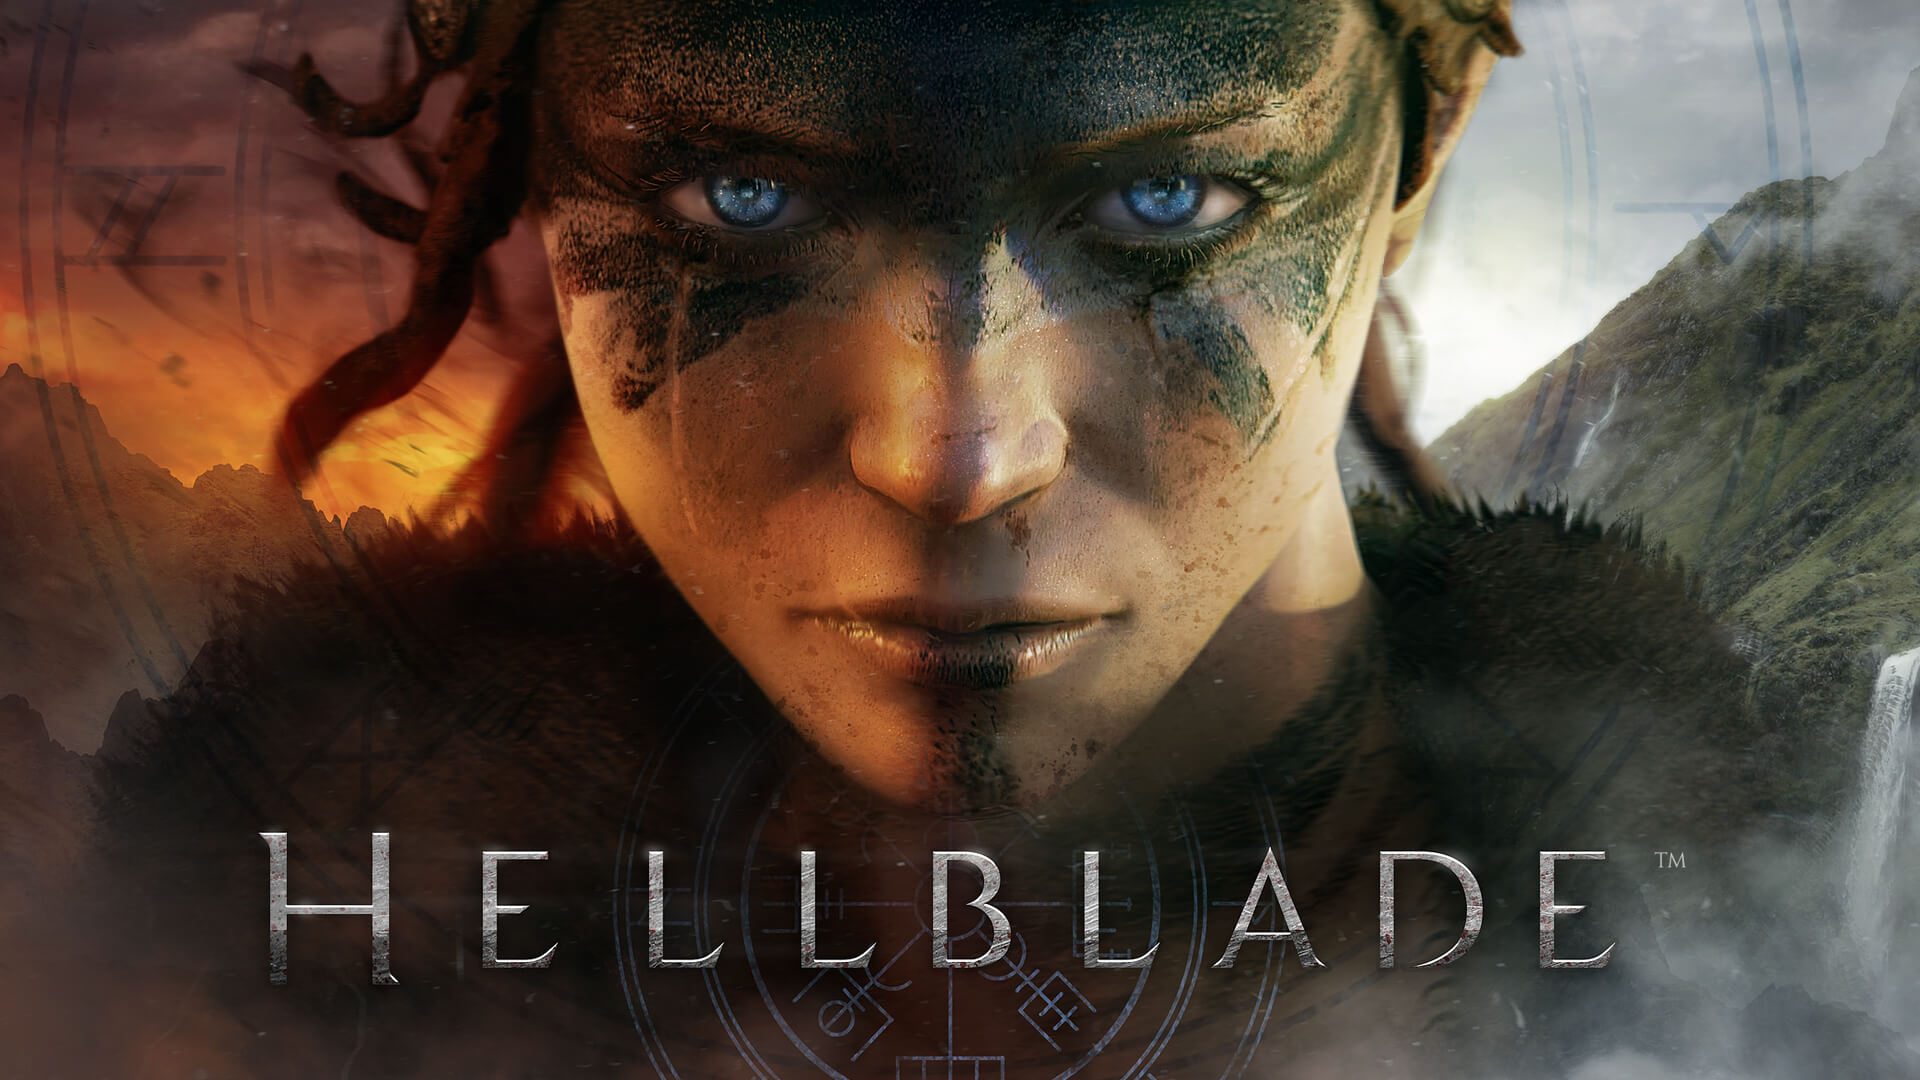 Hellblade 1 - Latest Hellblade: Senua's Sacrifice Trailer and Dev Diary Even More Magnificent Than Anything We've Seen So Far